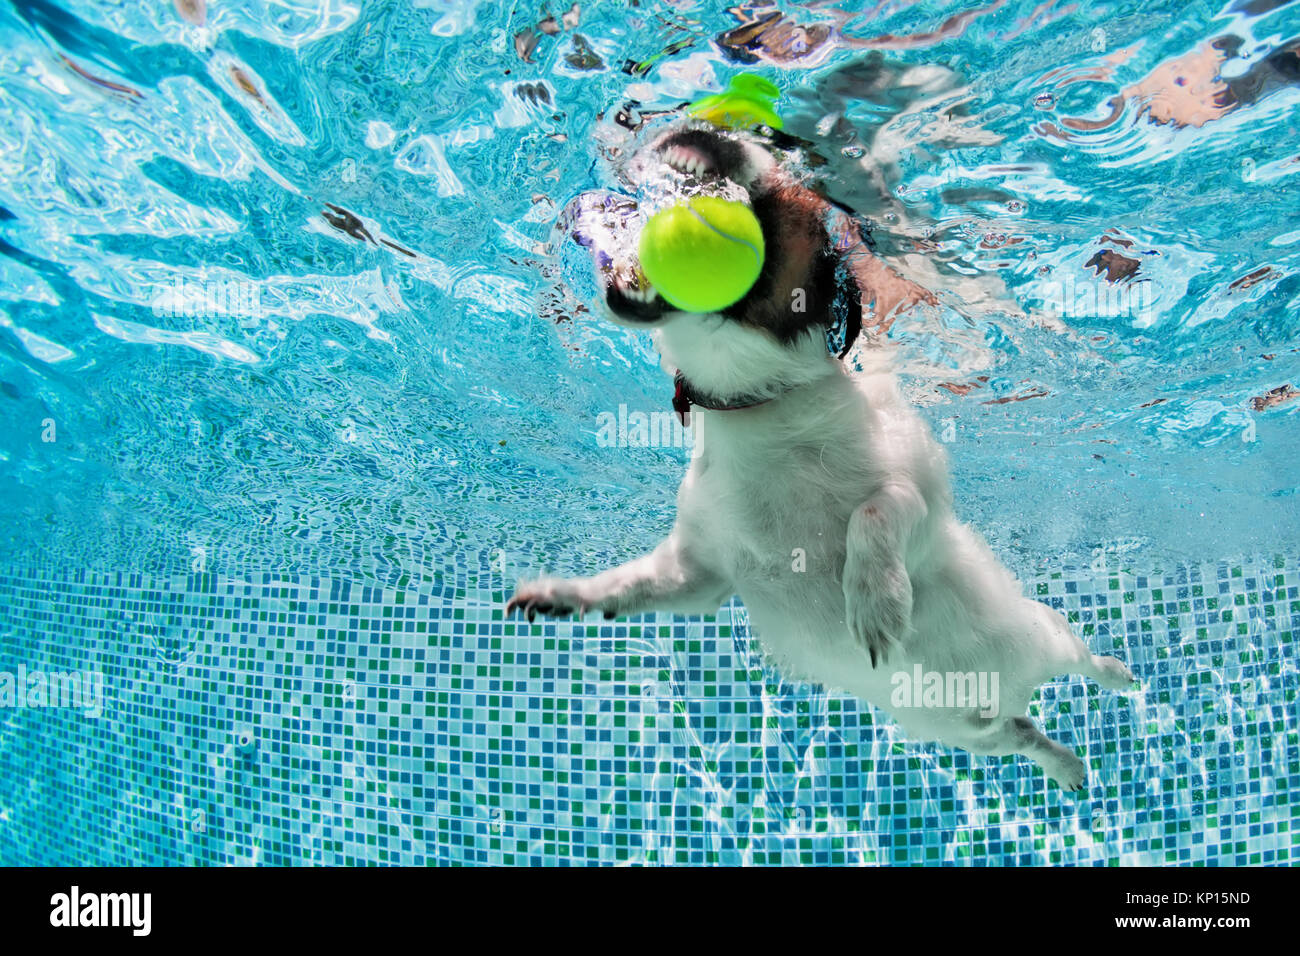 Playful jack russell terrier puppy in swimming pool has fun. Dog jump, dive underwater to fetch ball. Training classes, - Stock Image